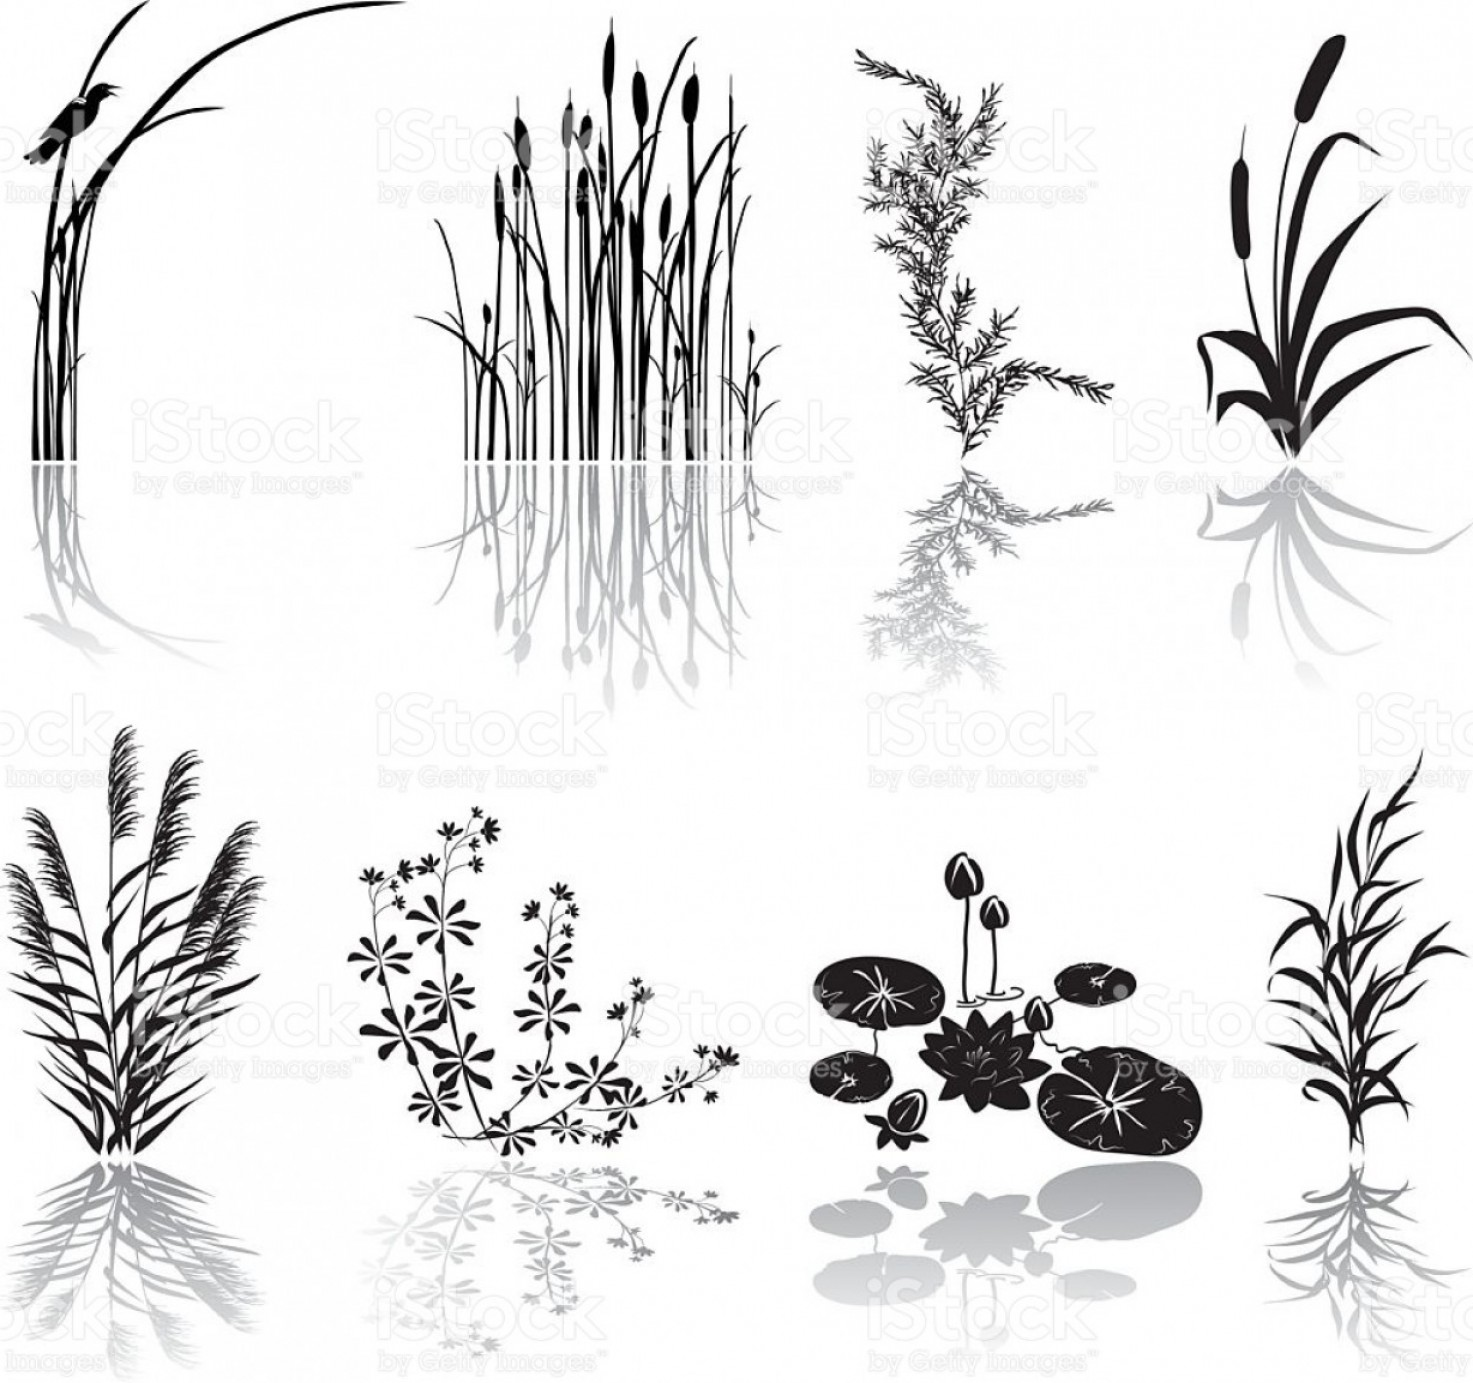 Swamp Vector Art: Wetlands Black Silhouette Icons With Multiple Marsh Elements And Shadows Gm